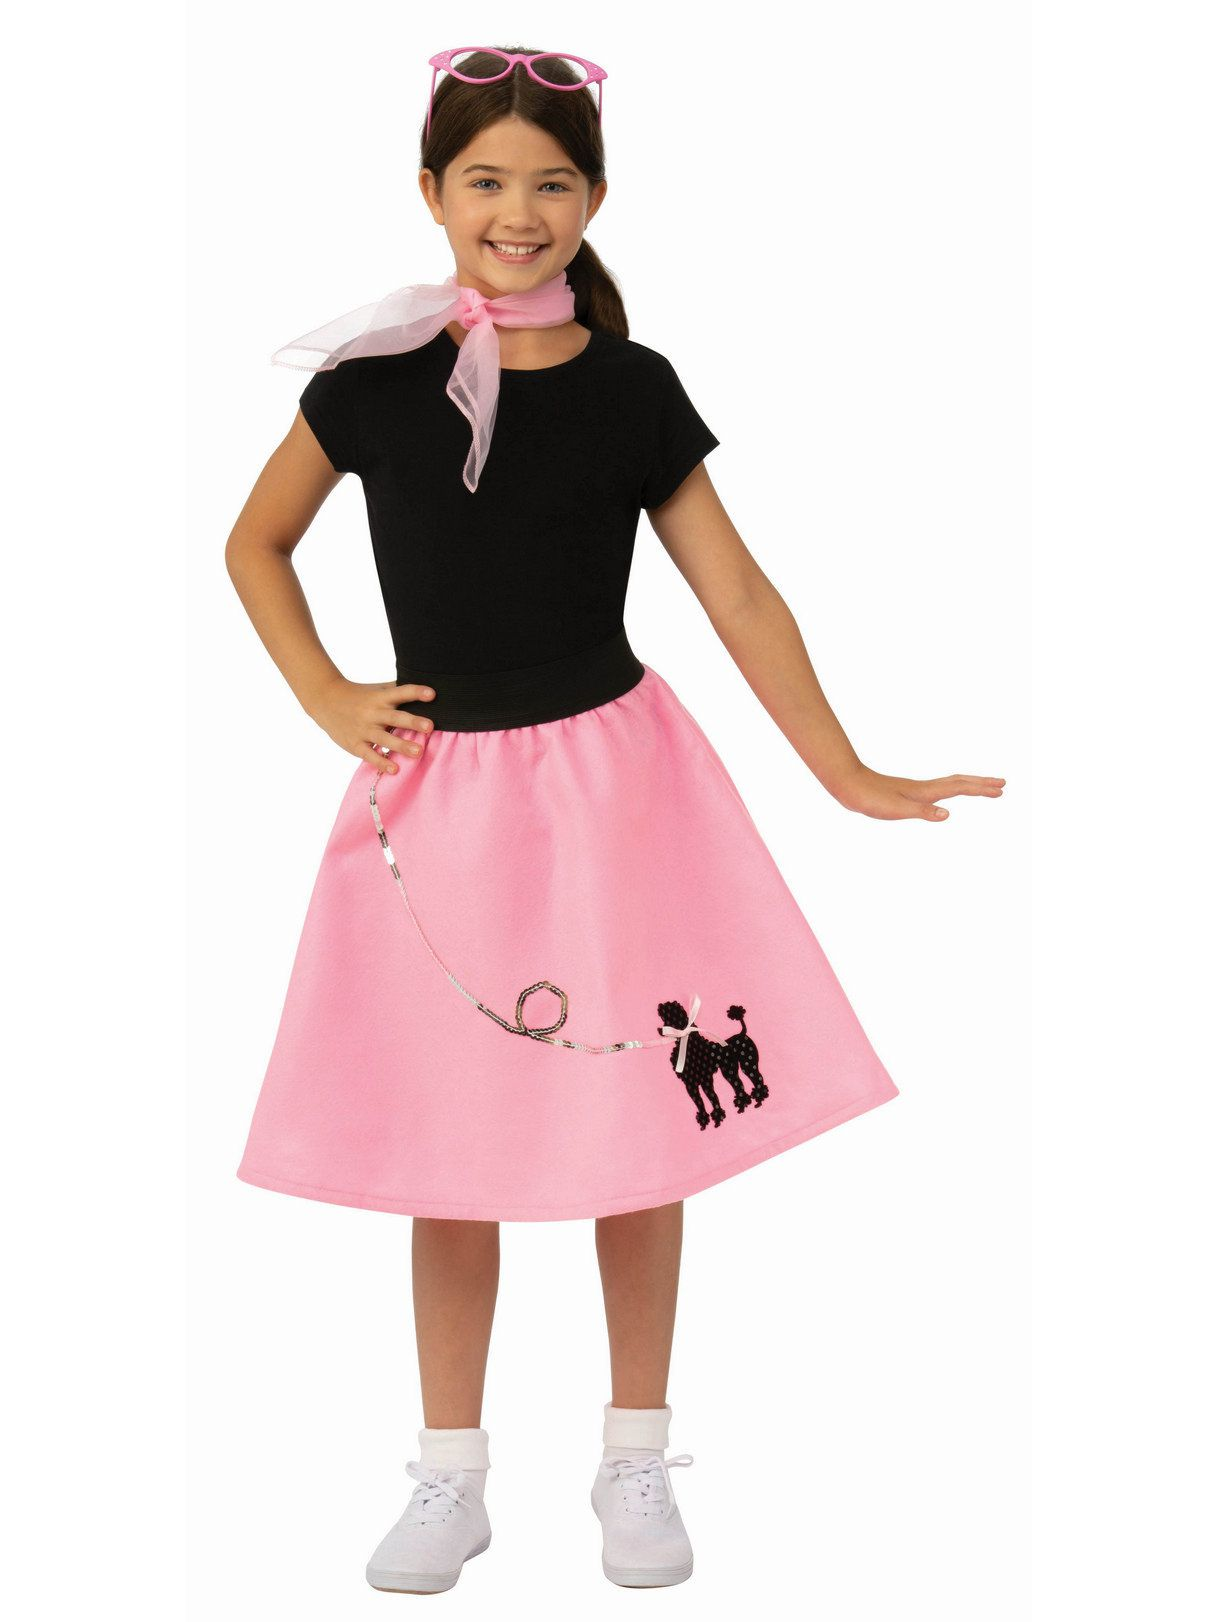 0e359172643c1 Girls Doo Wop Poodle Skirt Costume - Girls Costumes for 2018 ...